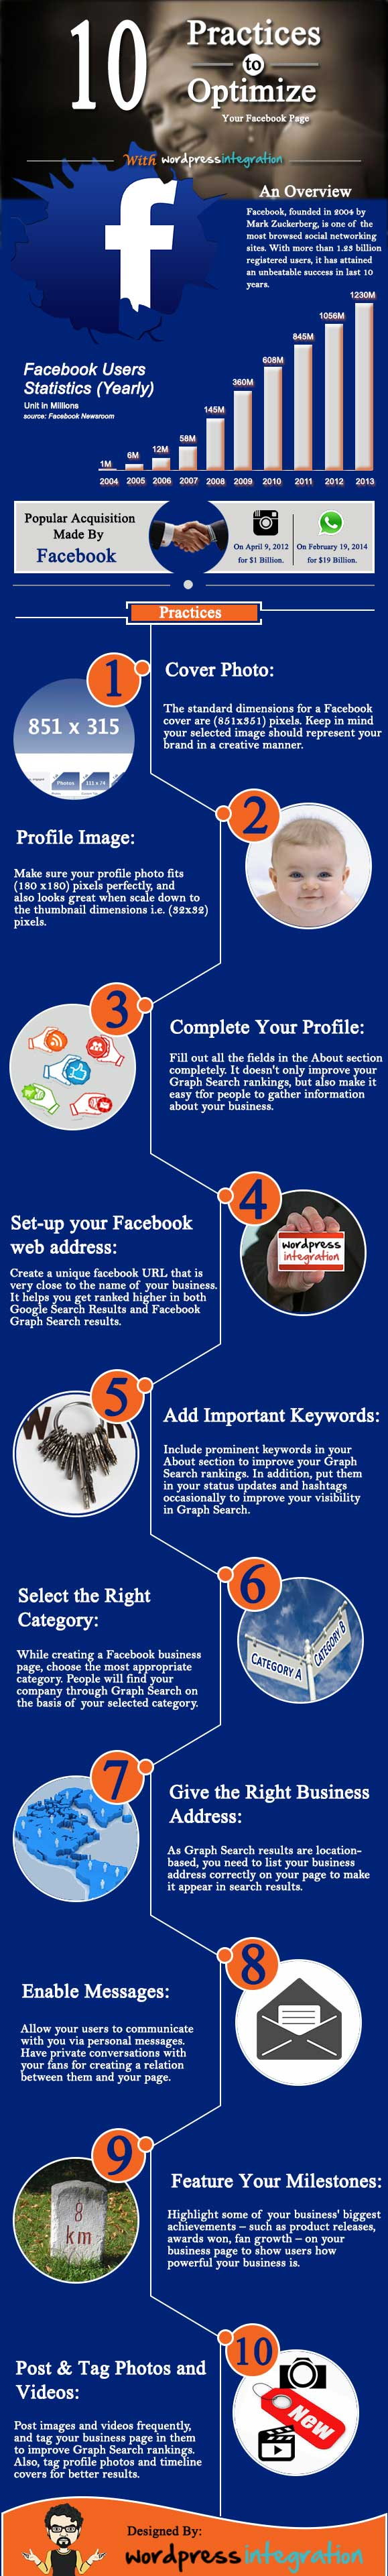 tips to customize your facebook page